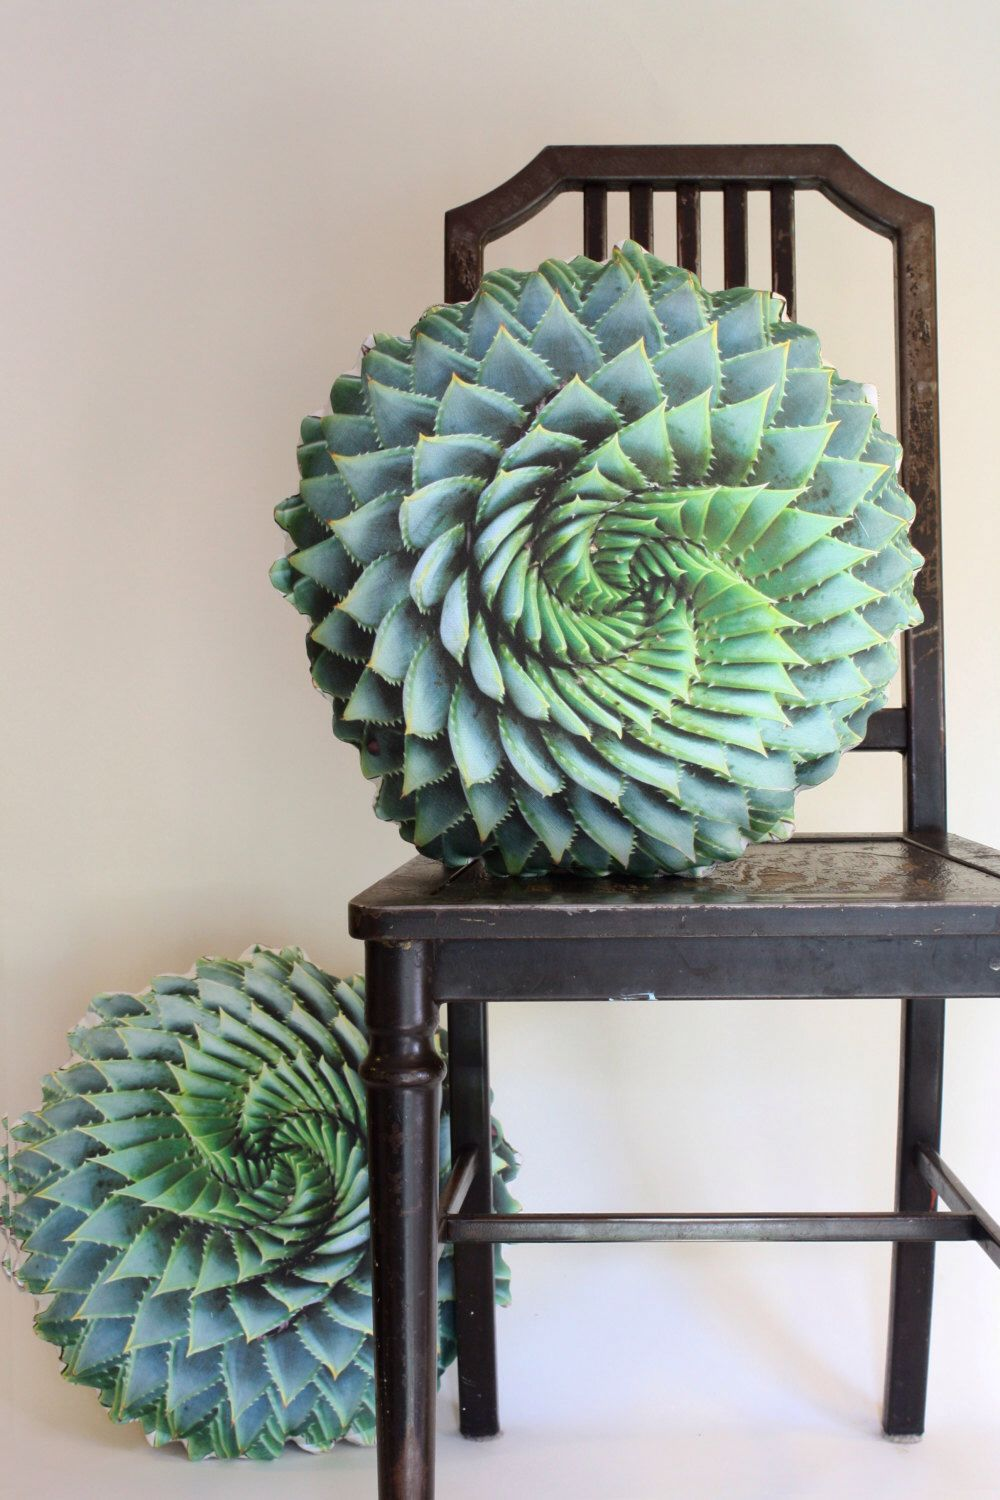 Spiral Succulent decorative pillow made to order by Plantillo on Etsy https://www.etsy.com/listing/201668569/spiral-succulent-decorative-pillow-made